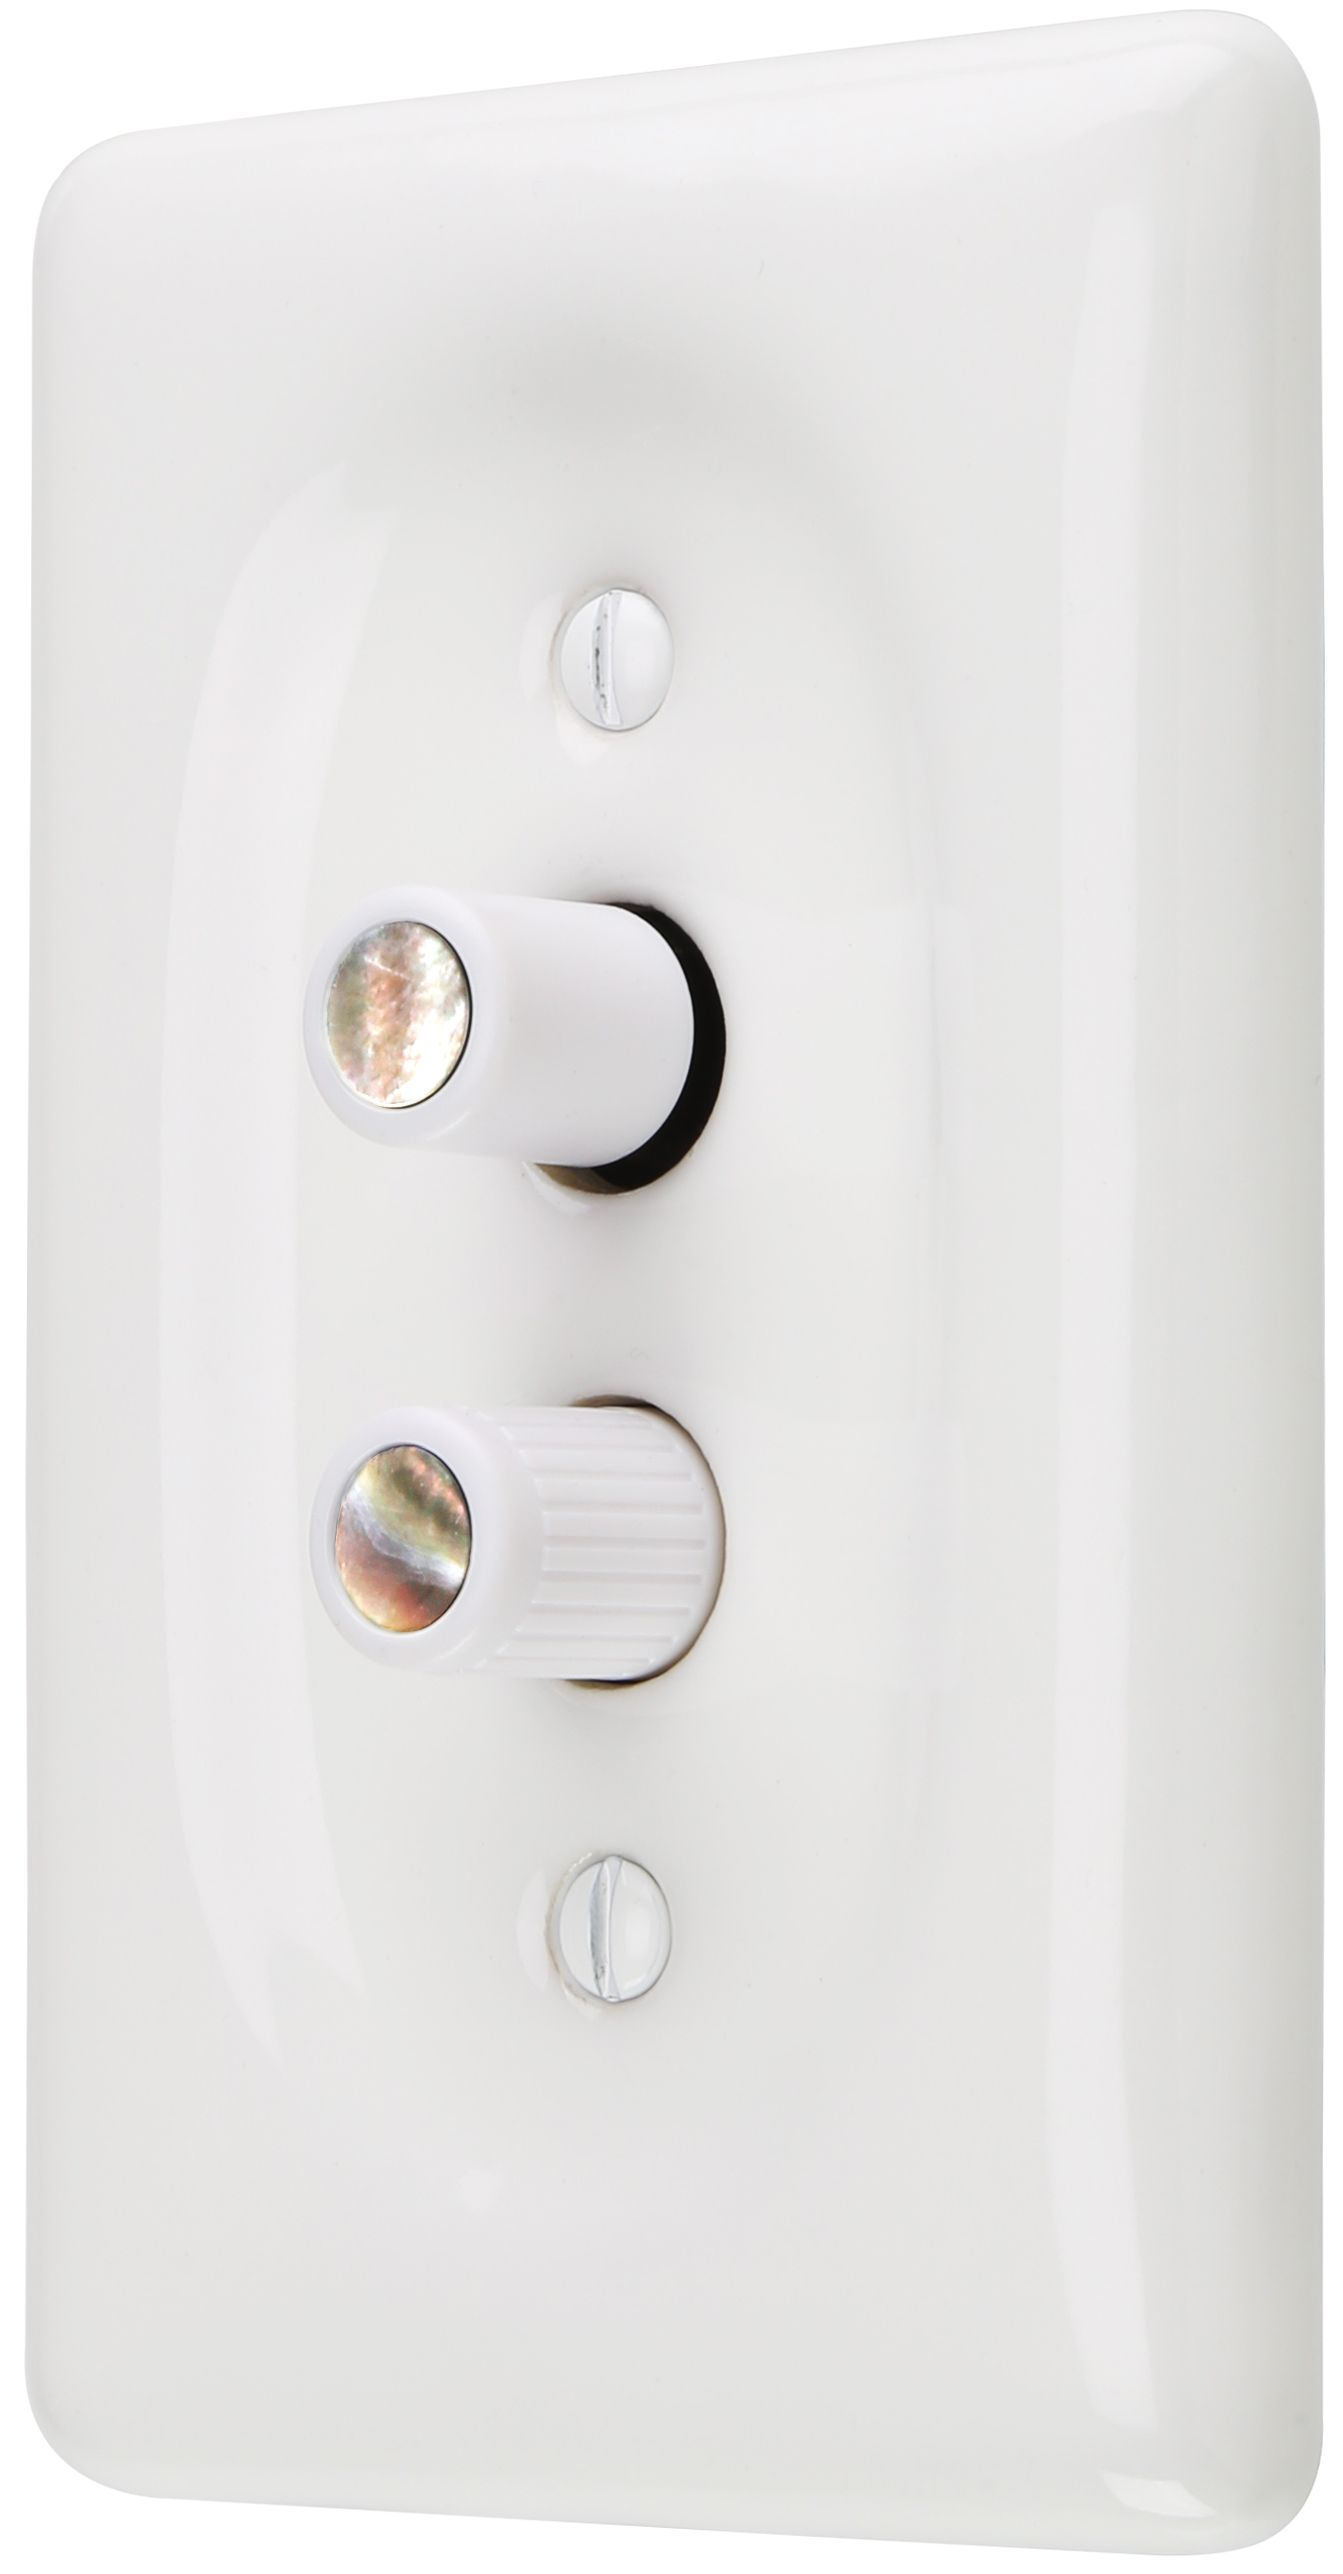 Premium 3 Way White Push Button Light Switch With True Mother Of Pearl Buttons In 2020 Light Switch Antique Hardware White Porcelain